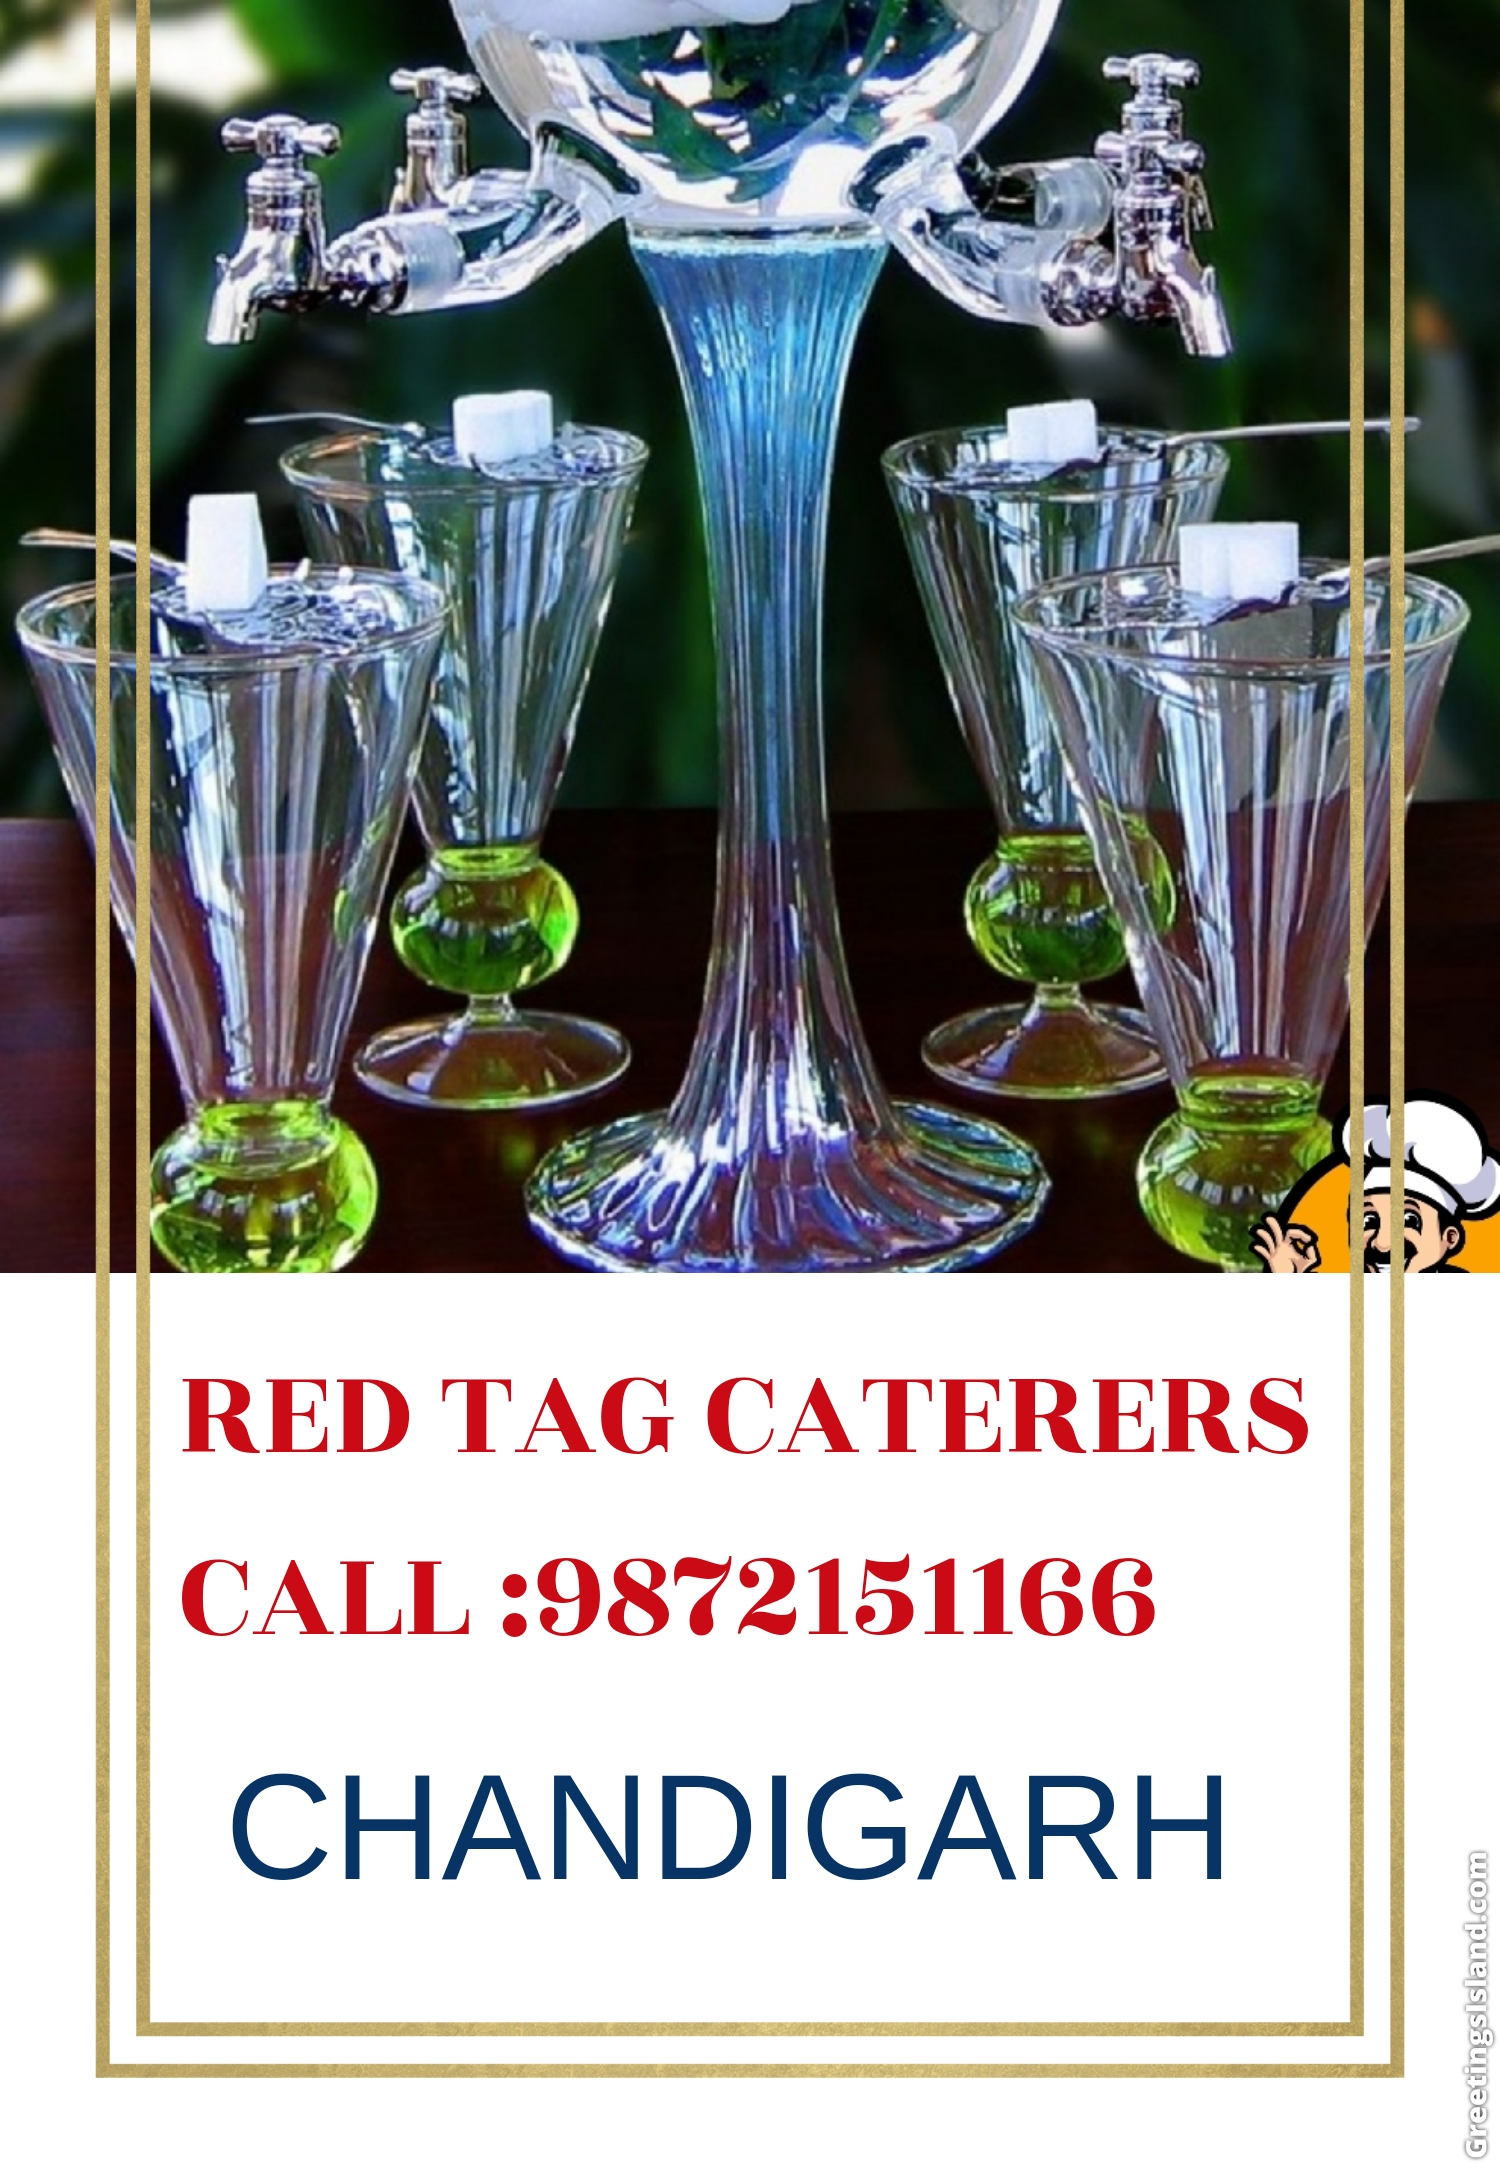 Red Tag Caterers, Catering for special occasion in panchkula, best wedding caterers in panchkula, outstanding catering service in panchkula, professional corporate catering in panchkula